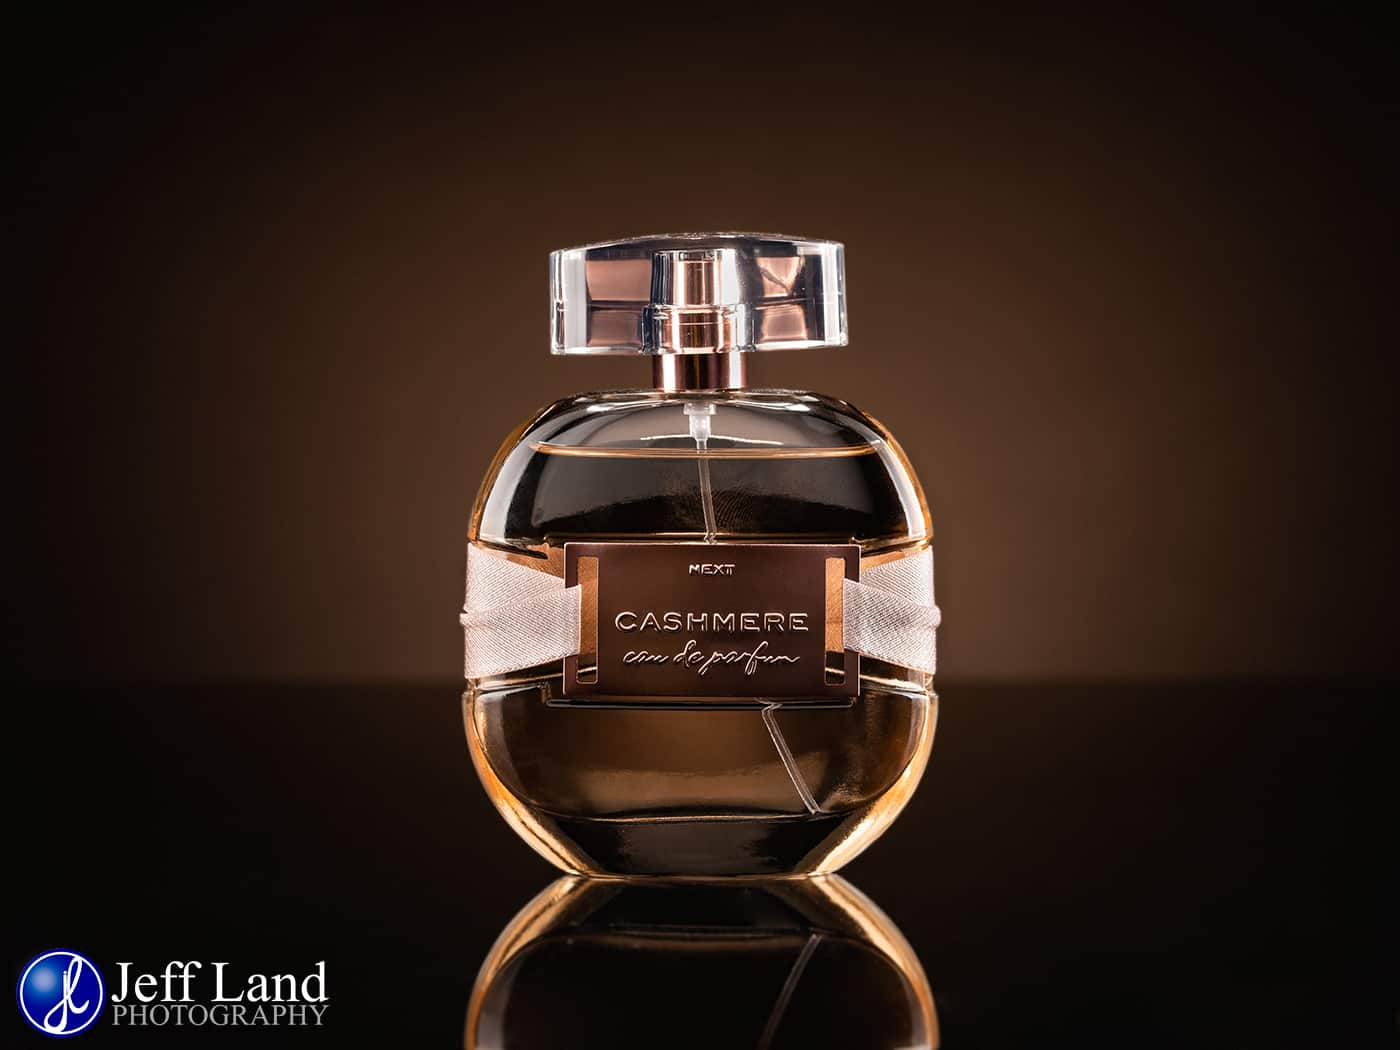 Cashmere Eau De Parfum, Product, Photographer, Warwickshire, Stratford-upon-Avon, Food, Drink, Leamington Spa, Coventry